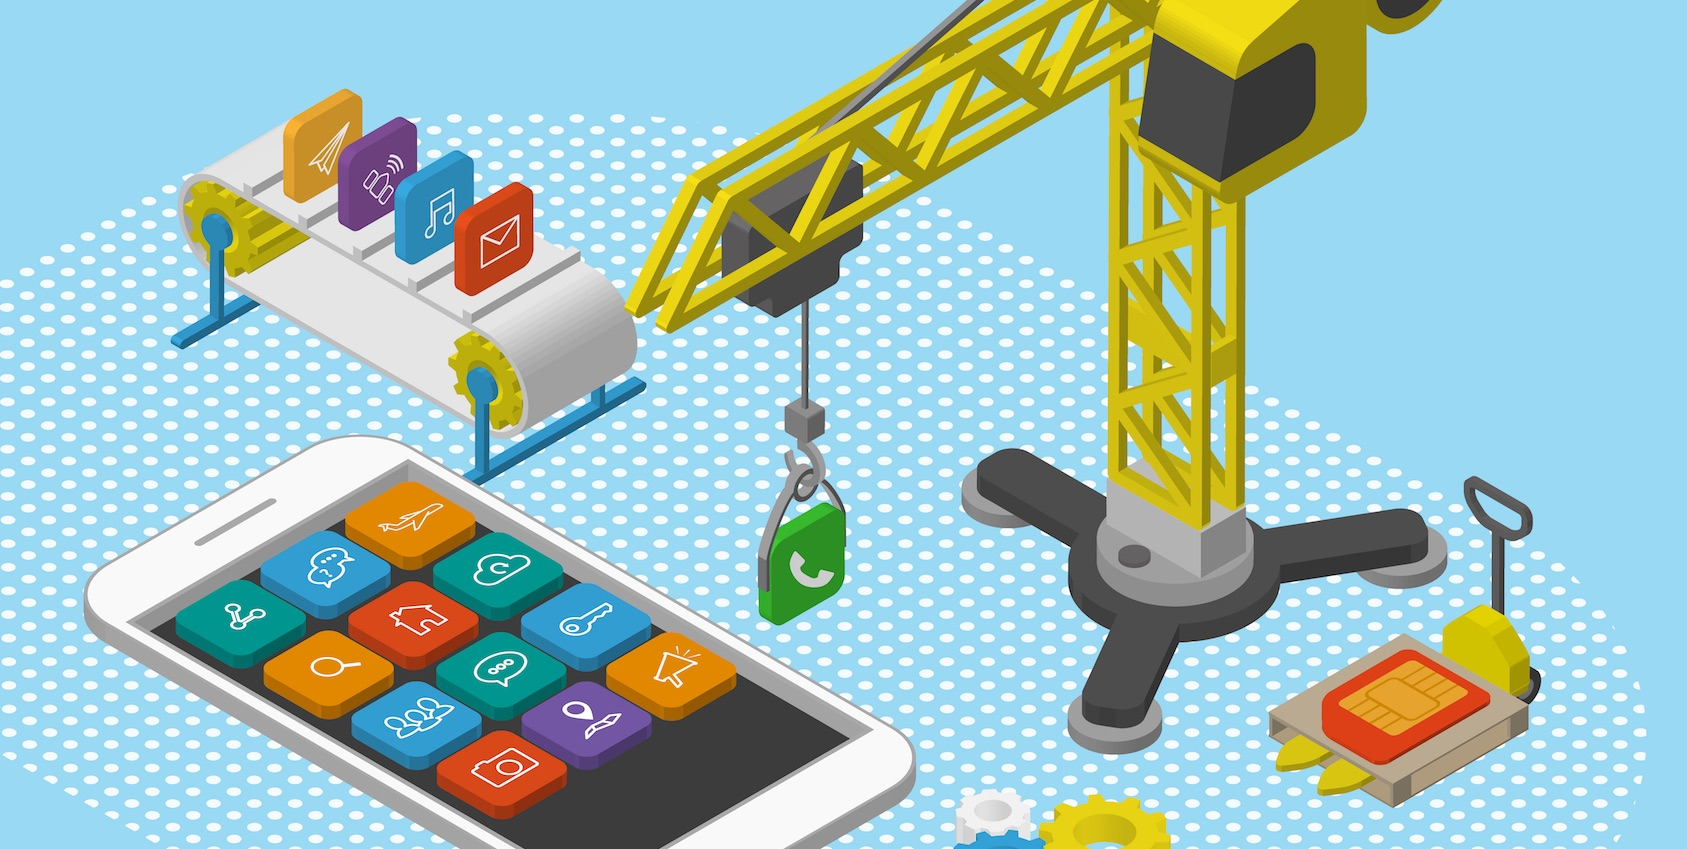 How to focus your app in the right direction